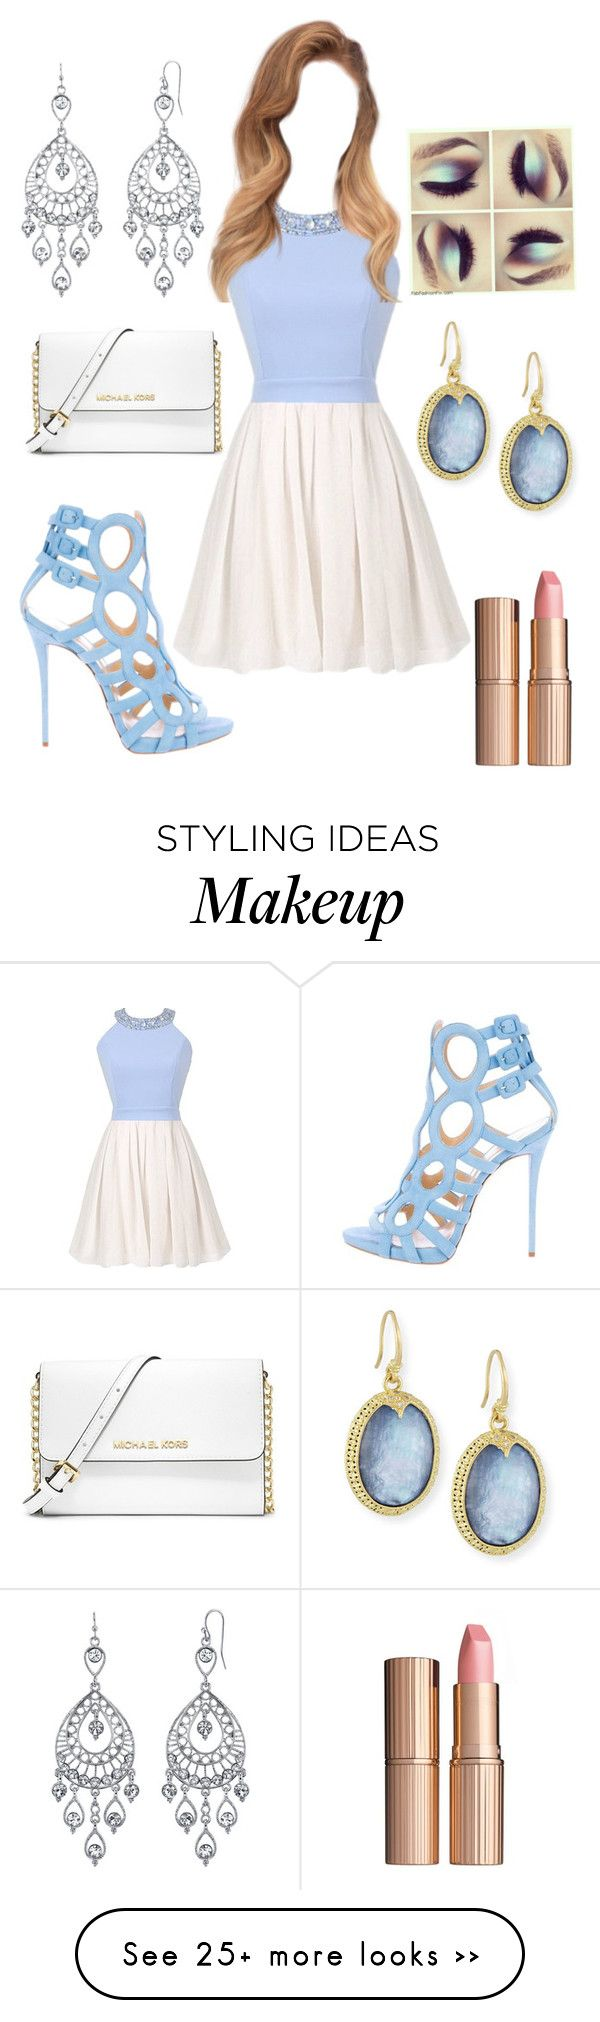 """Untitled #138"" by scasey-2 on Polyvore featuring 1928, Armenta, Giuseppe Zanotti, MICHAEL Michael Kors and Charlotte Tilbury"